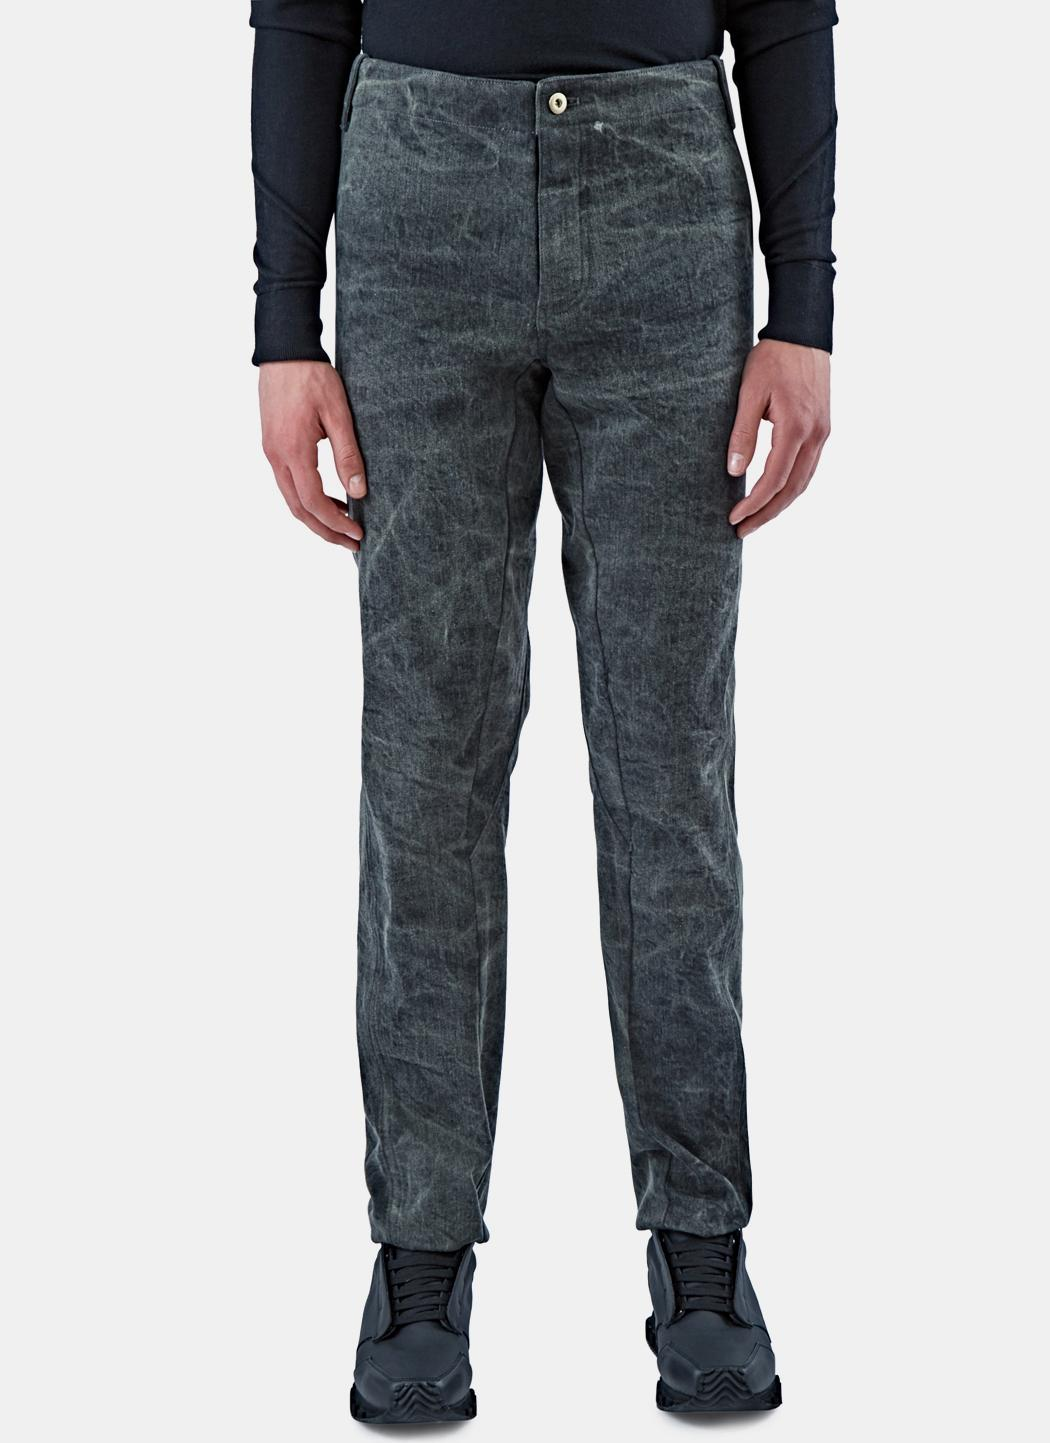 Discount Low Shipping Enjoy Cheap Price DENIM - Denim trousers Abasi Rosborough Clearance Largest Supplier Cheap Many Kinds Of Discount Shopping Online hjins